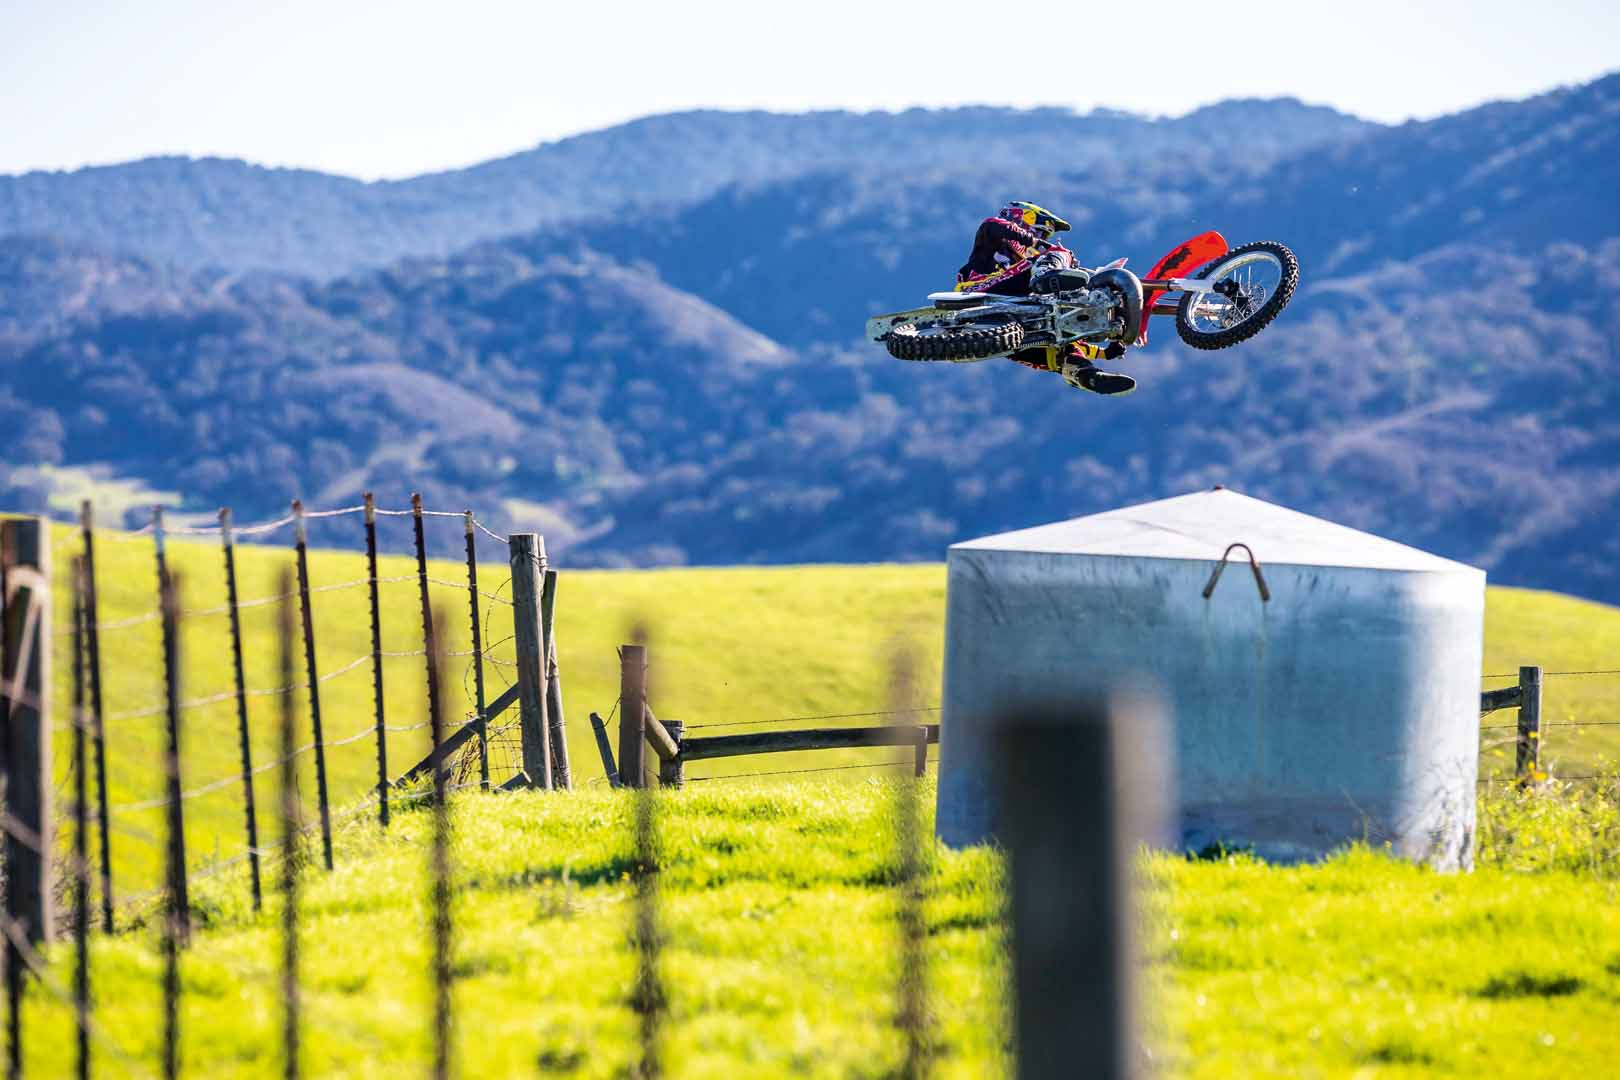 Ken Roczen rides Jeremy McGrath's 1996 Honda CR250R during a video shoot recreating segments from the original Terra Firma 2 motocross video at Castillo Ranch in Los Alamos, California, USA on 28 December 2016. // Garth Milan/Red Bull Content Pool // P-20170109-01476 // Usage for editorial use only // Please go to www.redbullcontentpool.com for further information. //